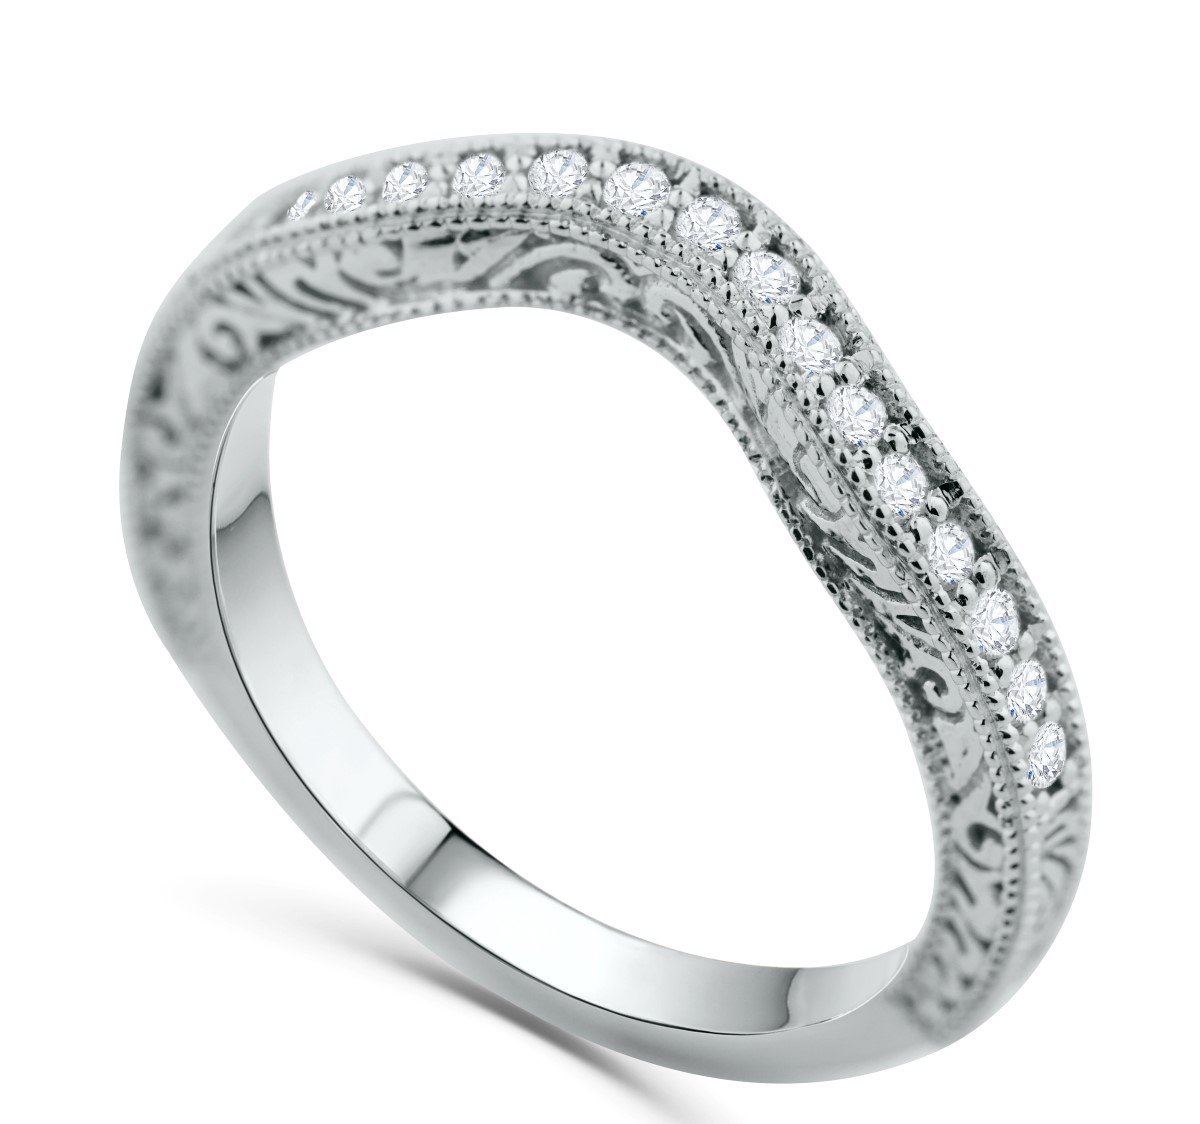 14K White Gold Wedding Band Anniversary Ring Filigree Sides 1/4ctw Diamonds Curved Band by Midwest Jewellery